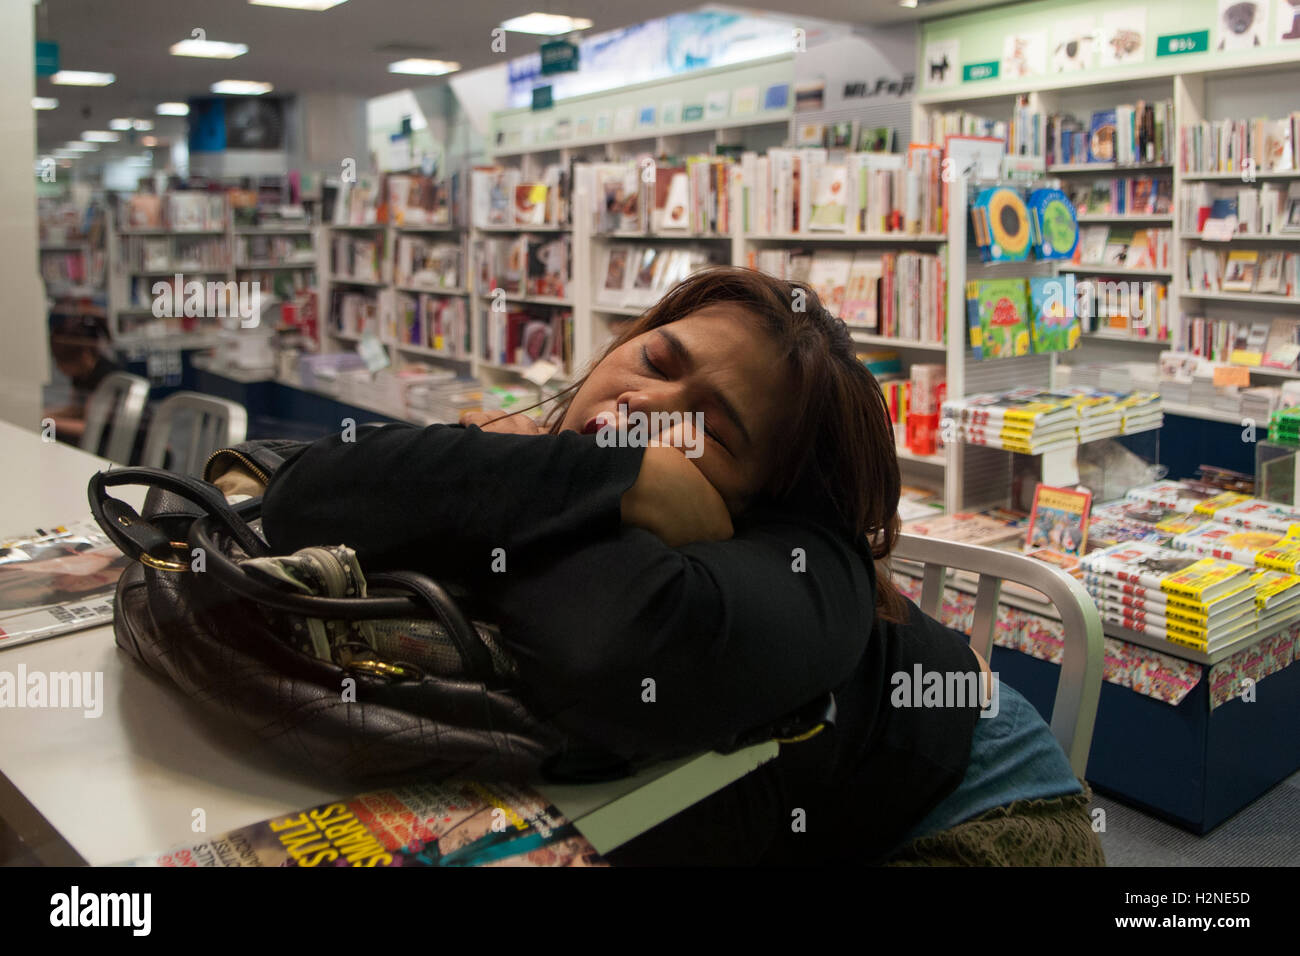 Young woman sleeping in a book store in Roppongi Hills central Tokyo Japan - Stock Image